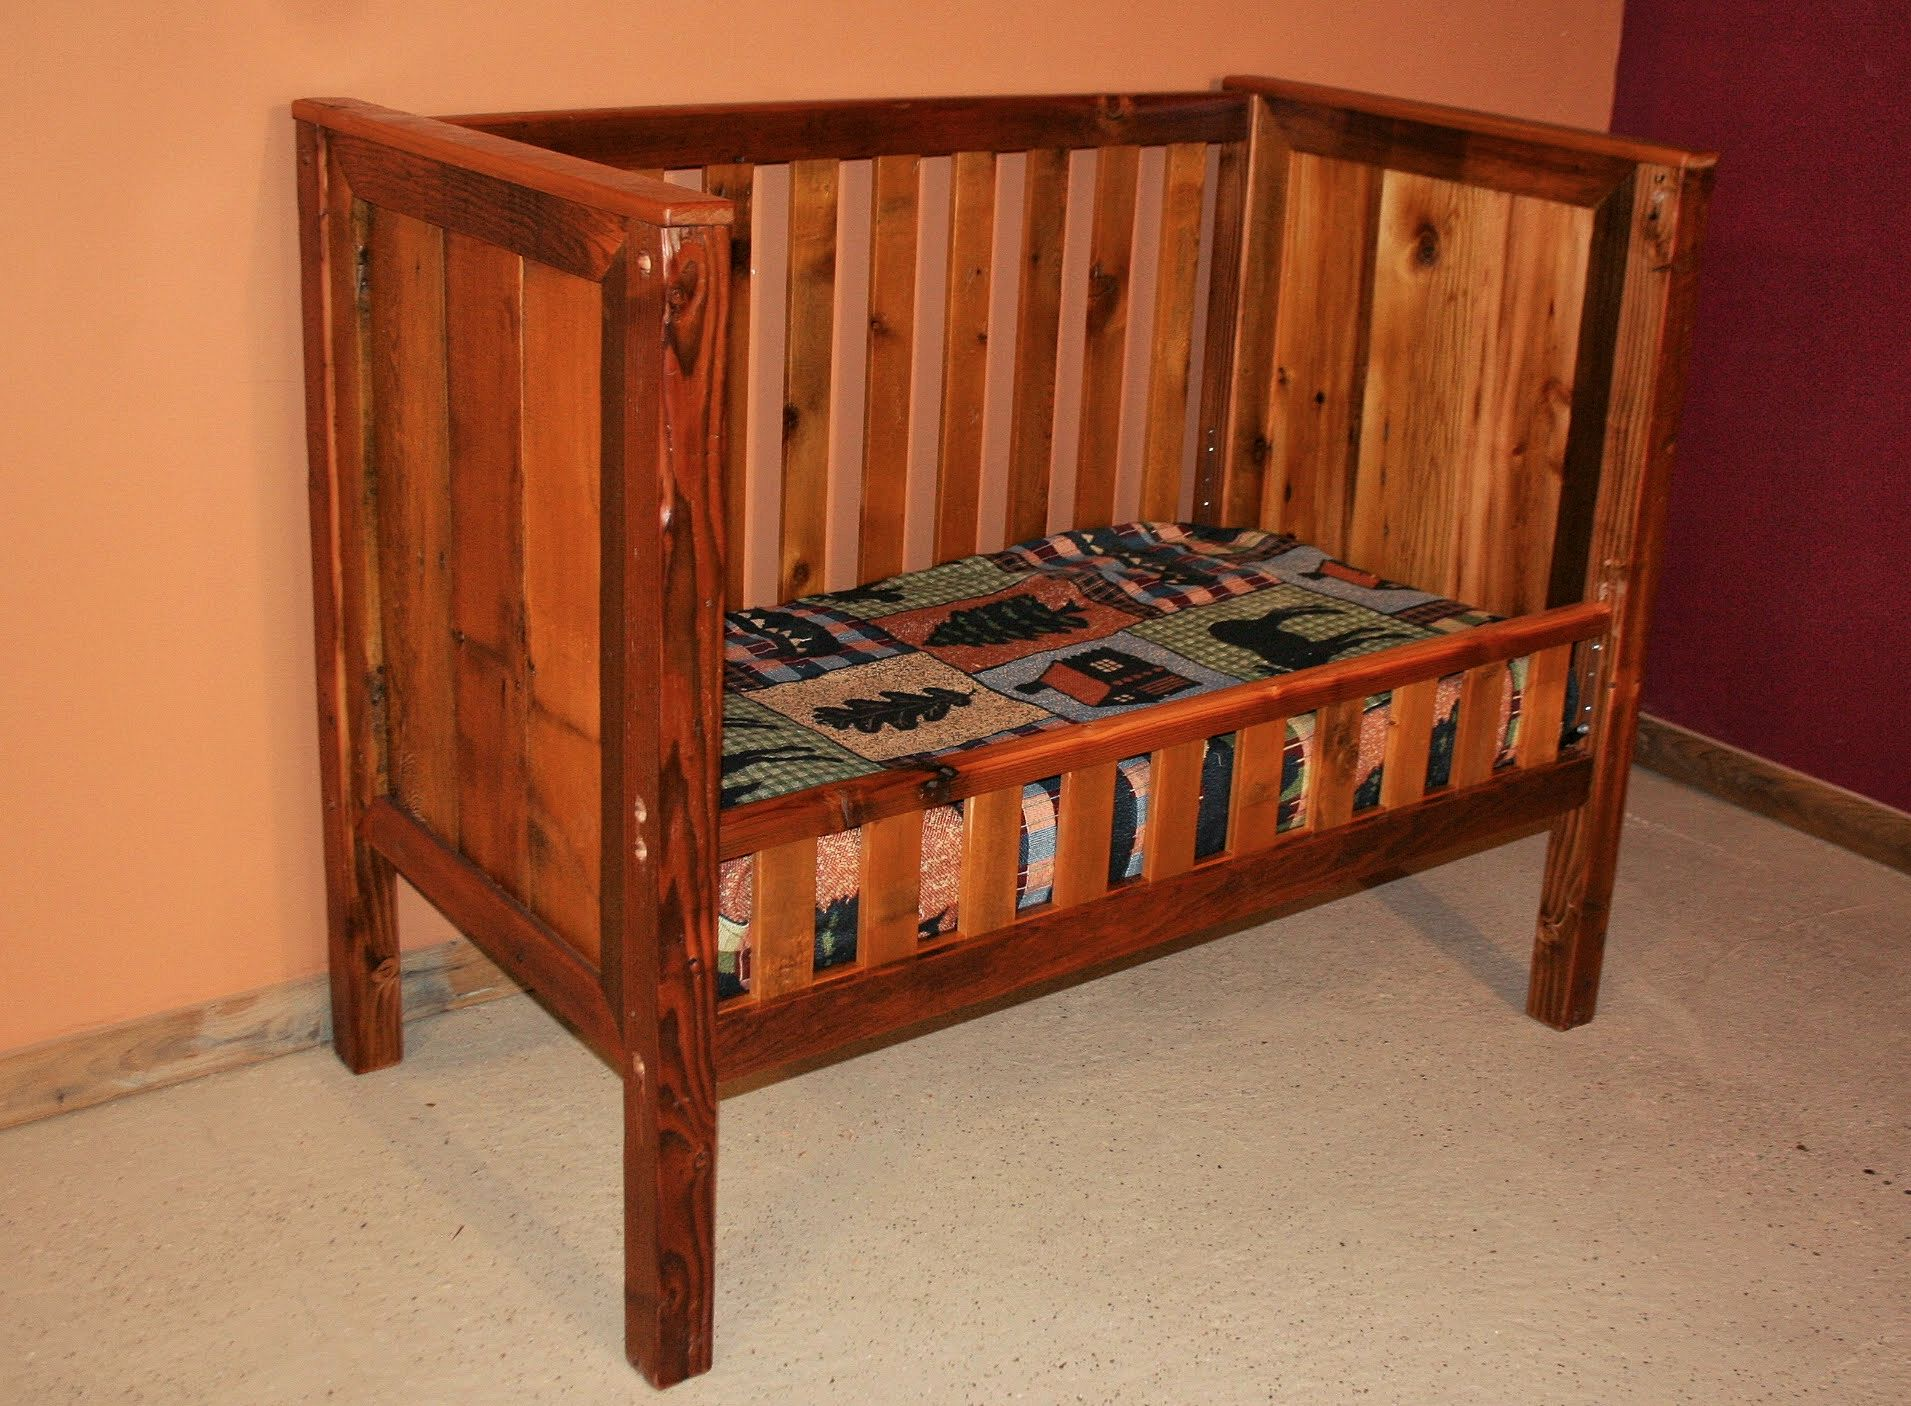 barnwood-baby-crib-side.jpg